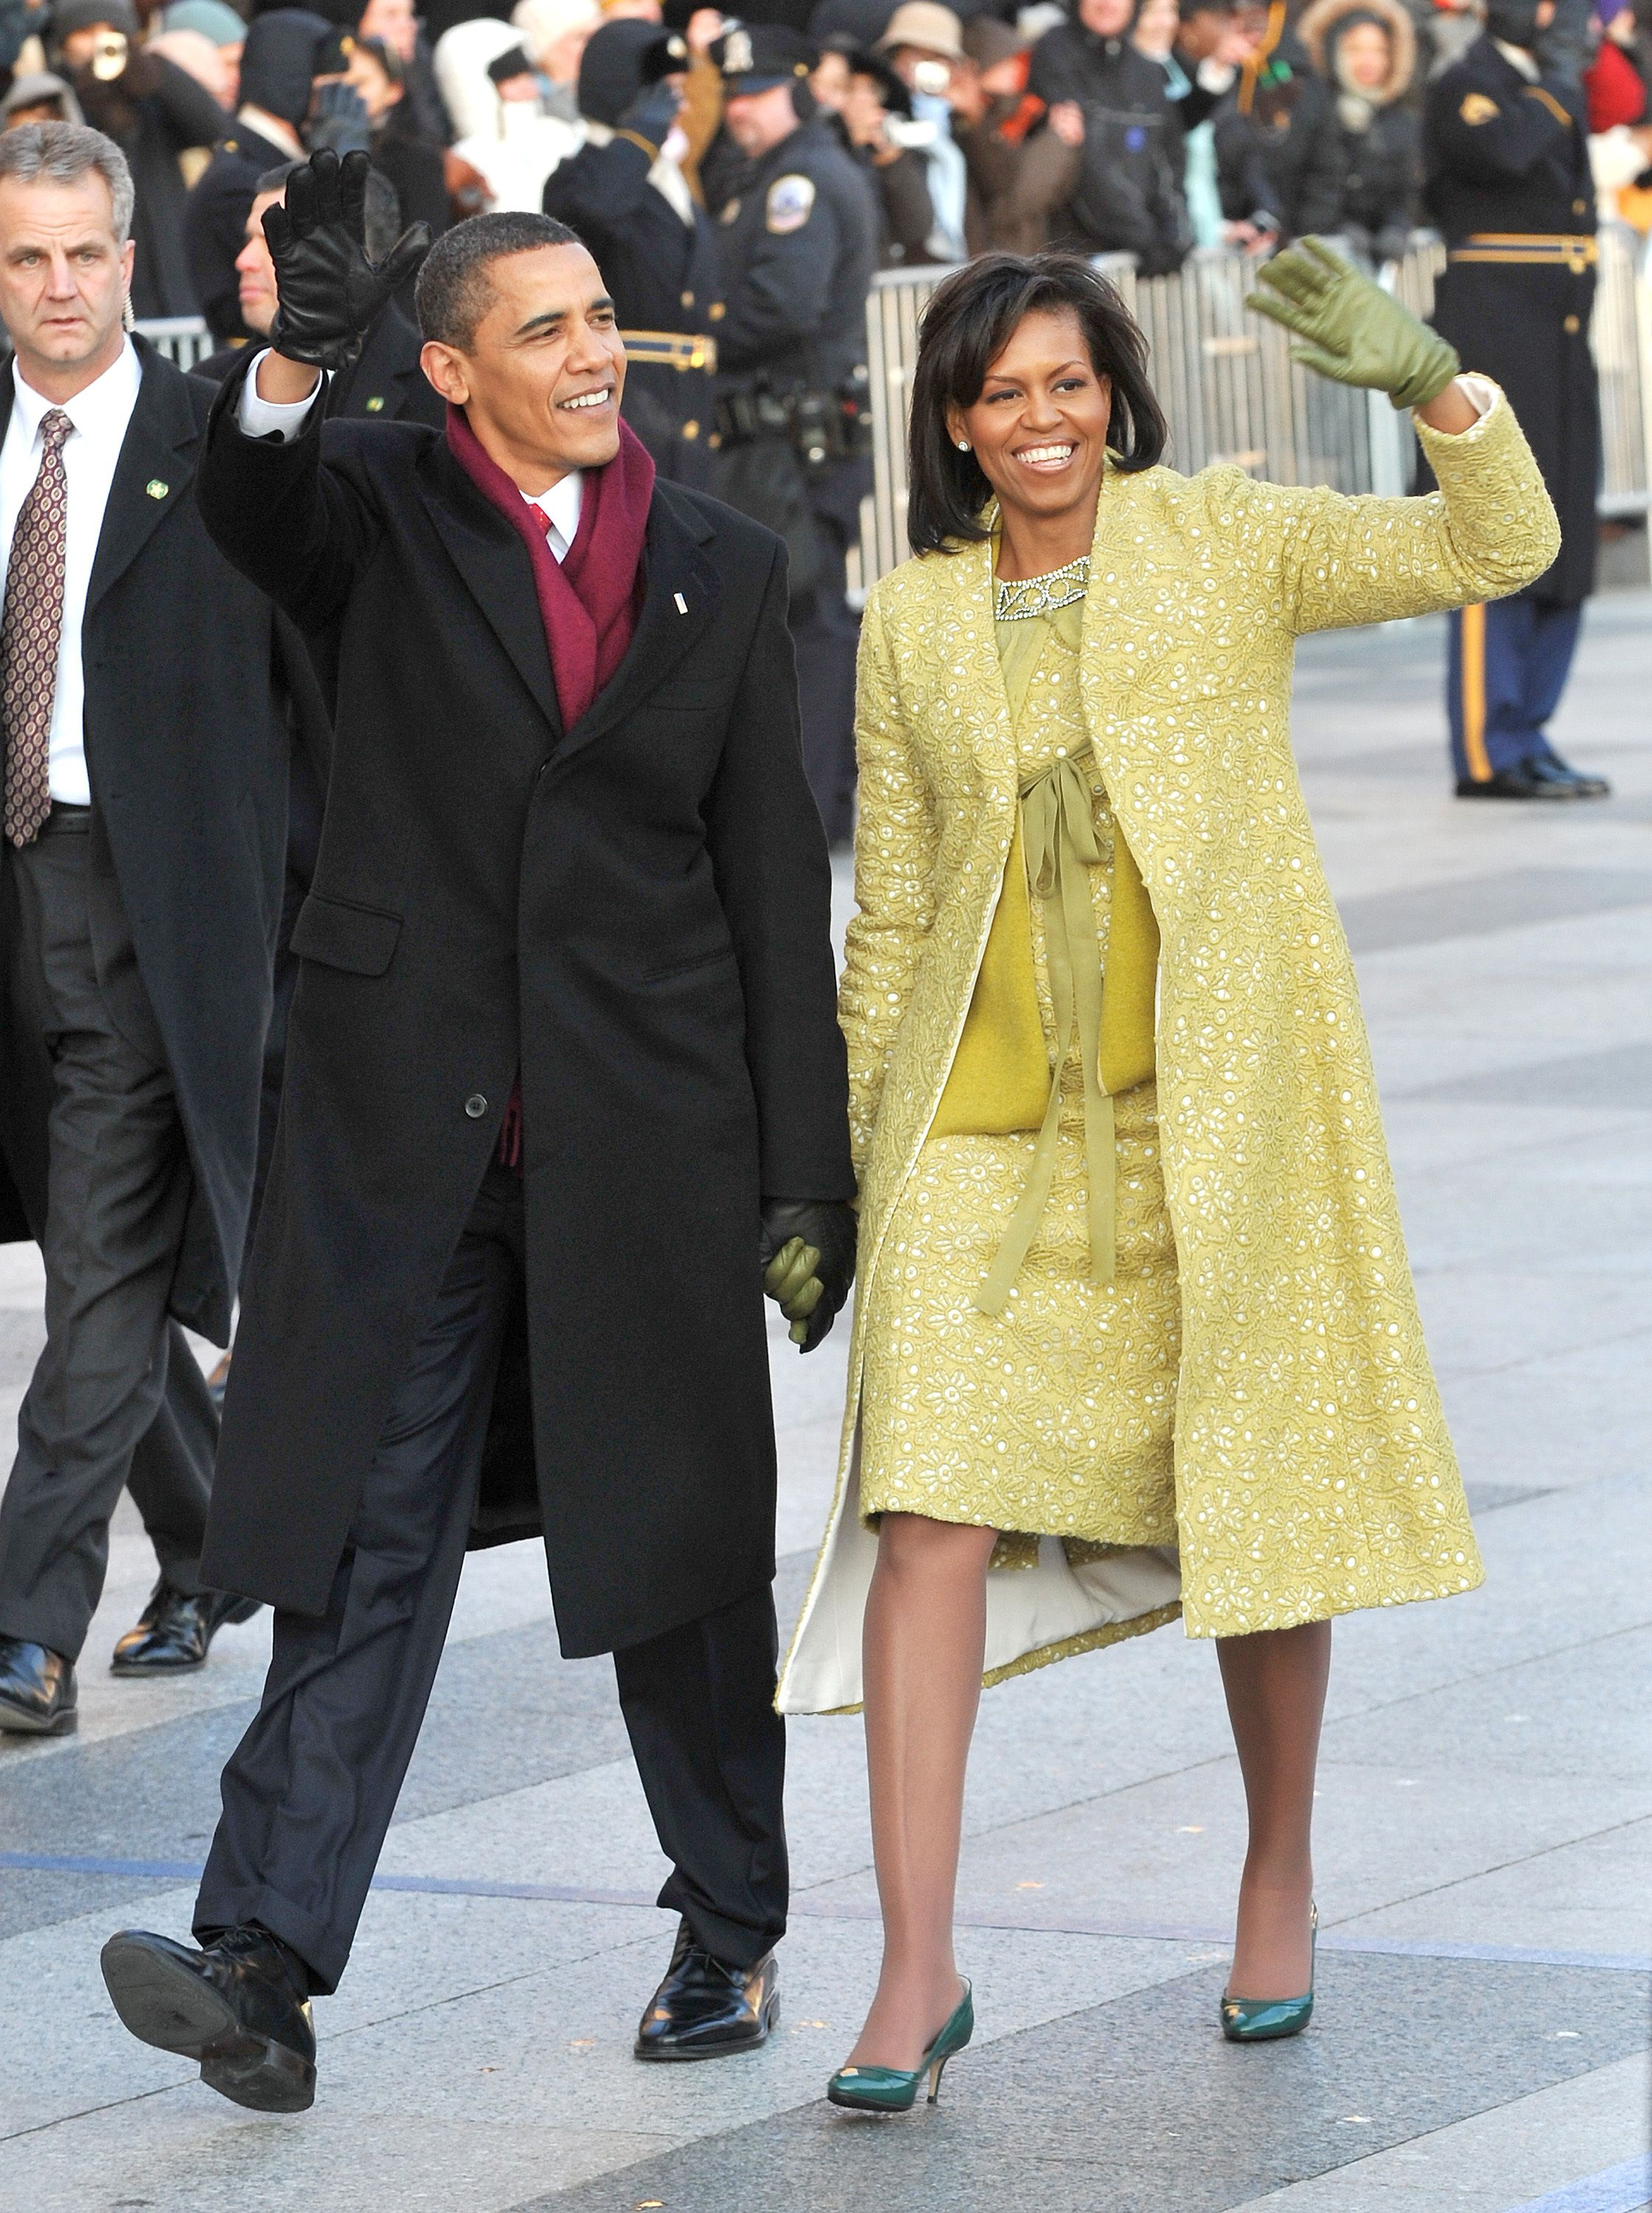 President Barack Obama and first lady Michelle Obama walk in the Inaugural Parade on January 20, 2009, in Washington, DC.   Photo: Ron Sachs-Pool/Getty Images